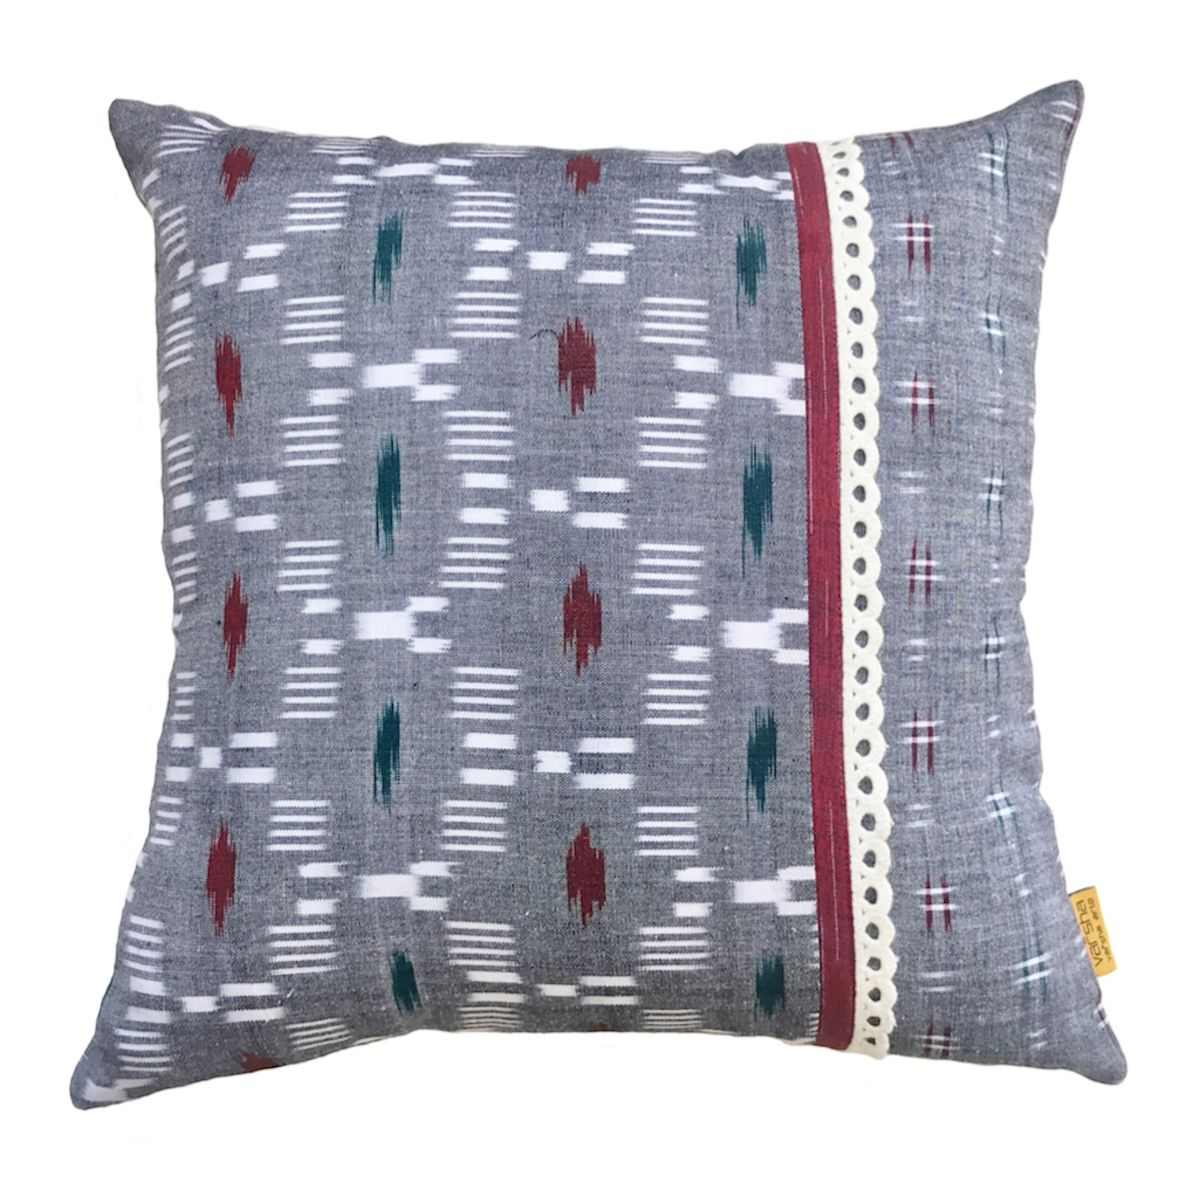 Straight Up Cushion Price ₹775.00 Style 172024 Size 16